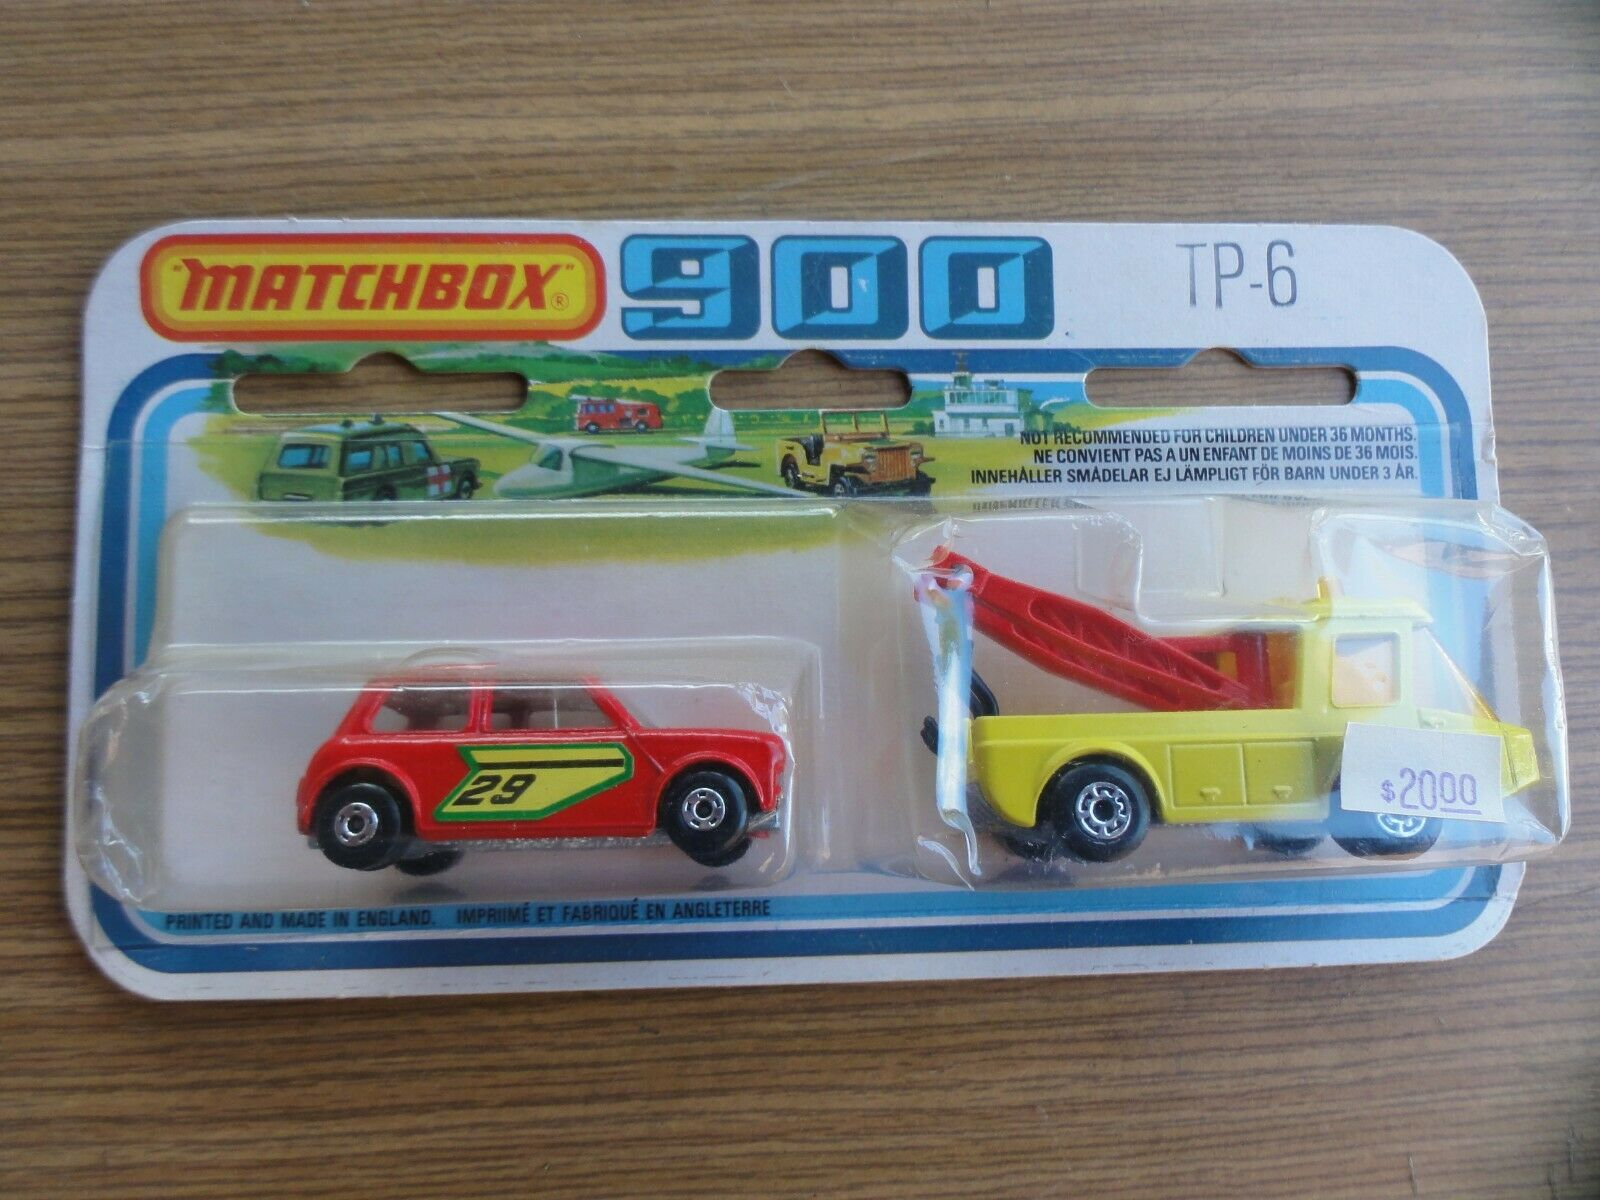 Matchbox 900 TP - 6 Toe Joe Racing mini New - ovp